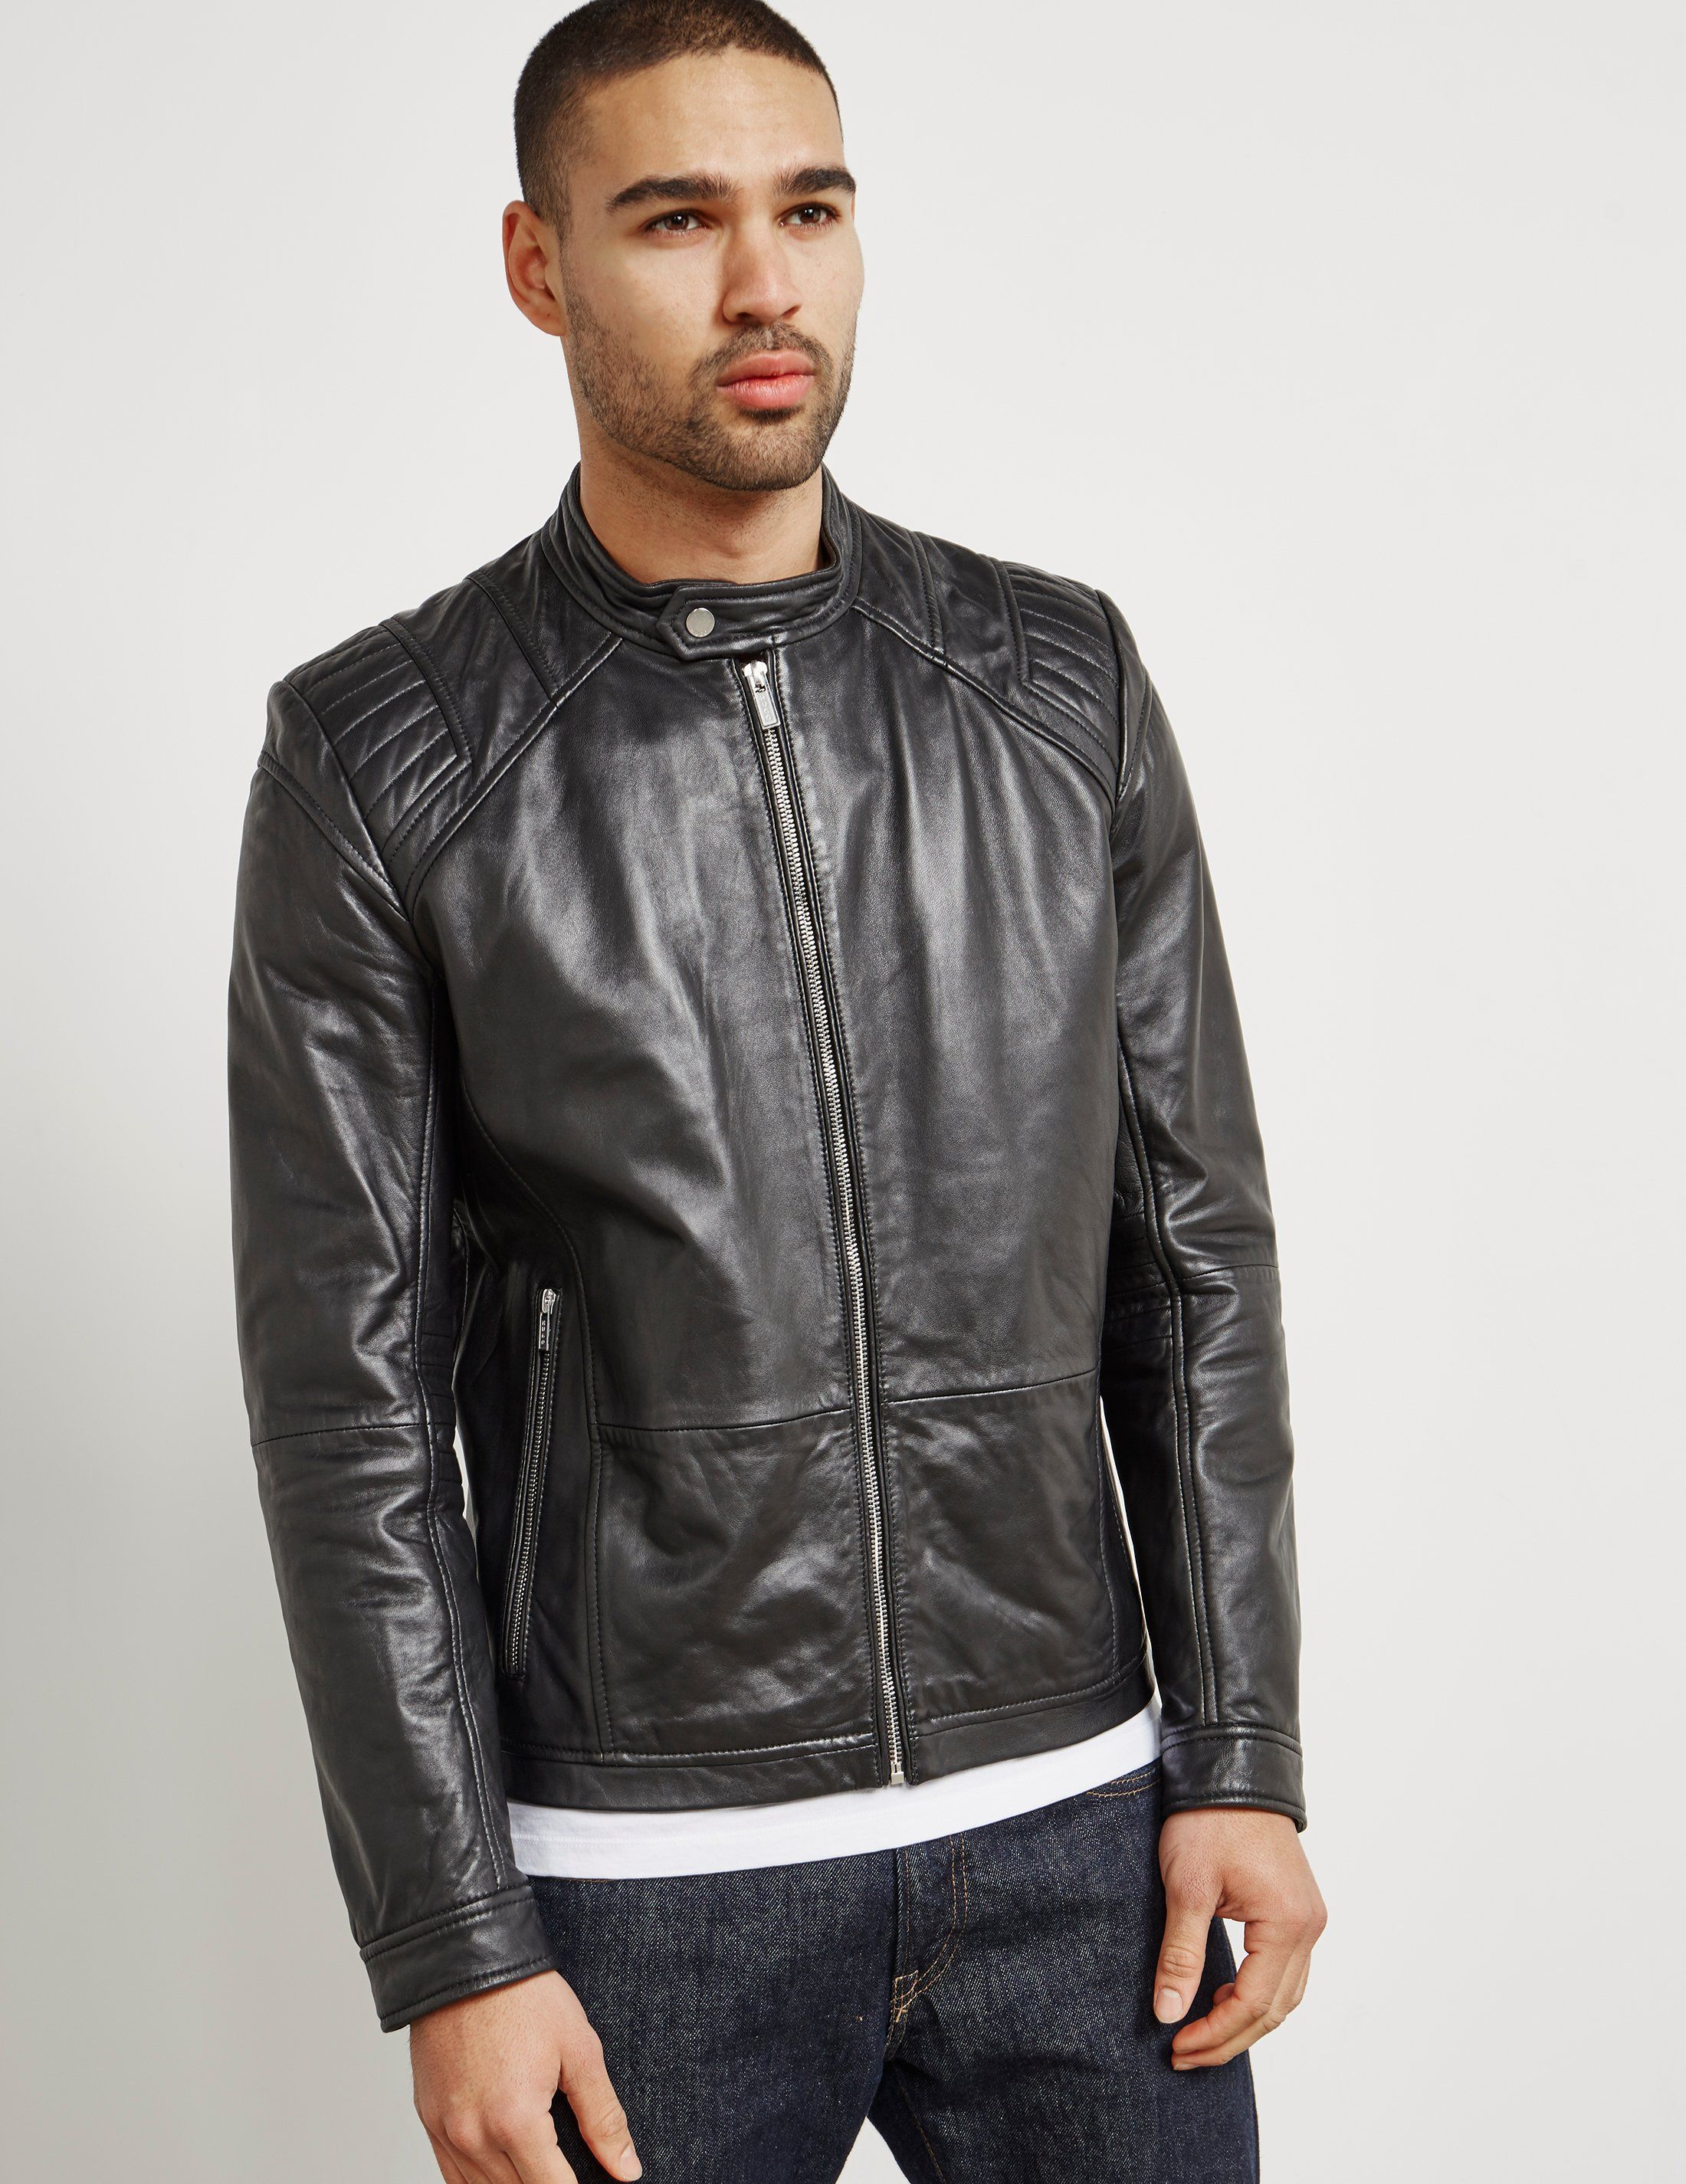 HUGO Lank Leather Jacket - Online Exclusive